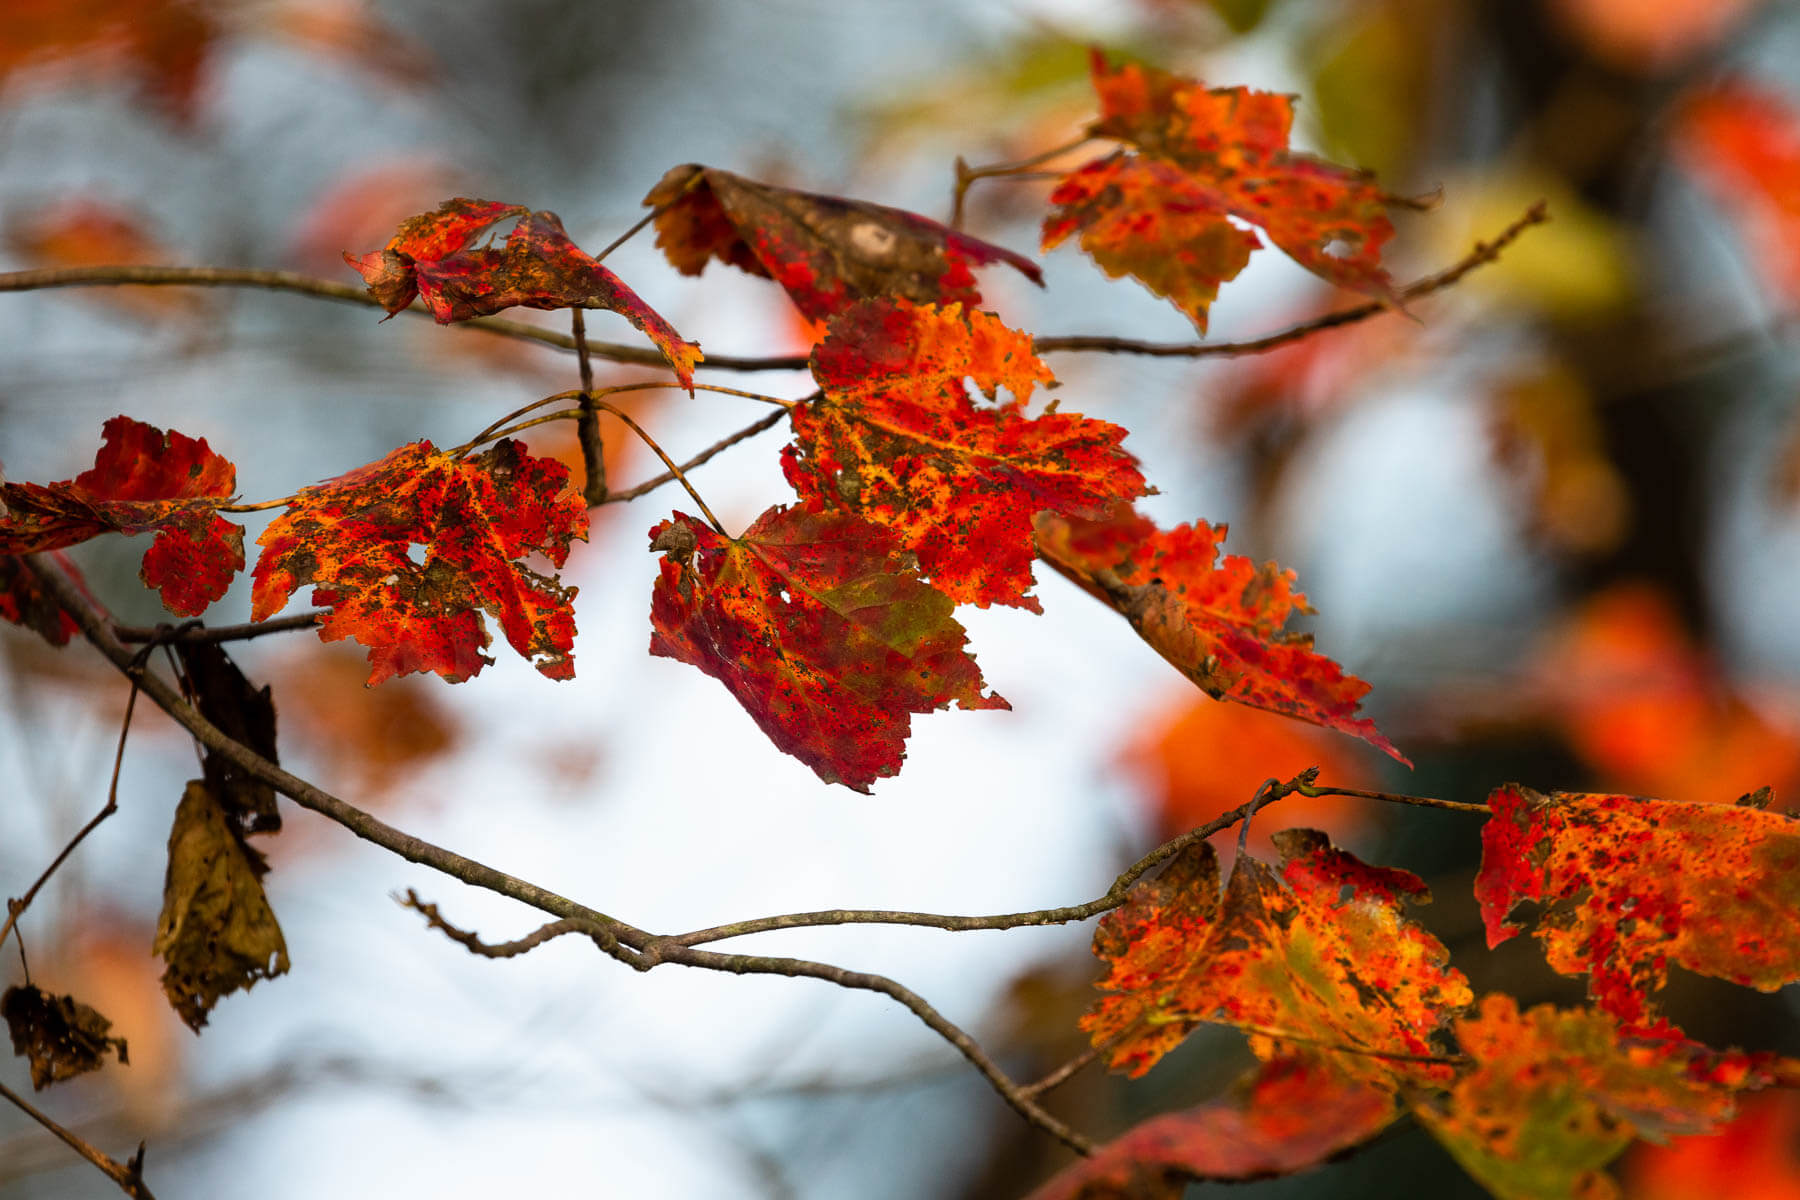 Red-colored maple leaves line a tree branch